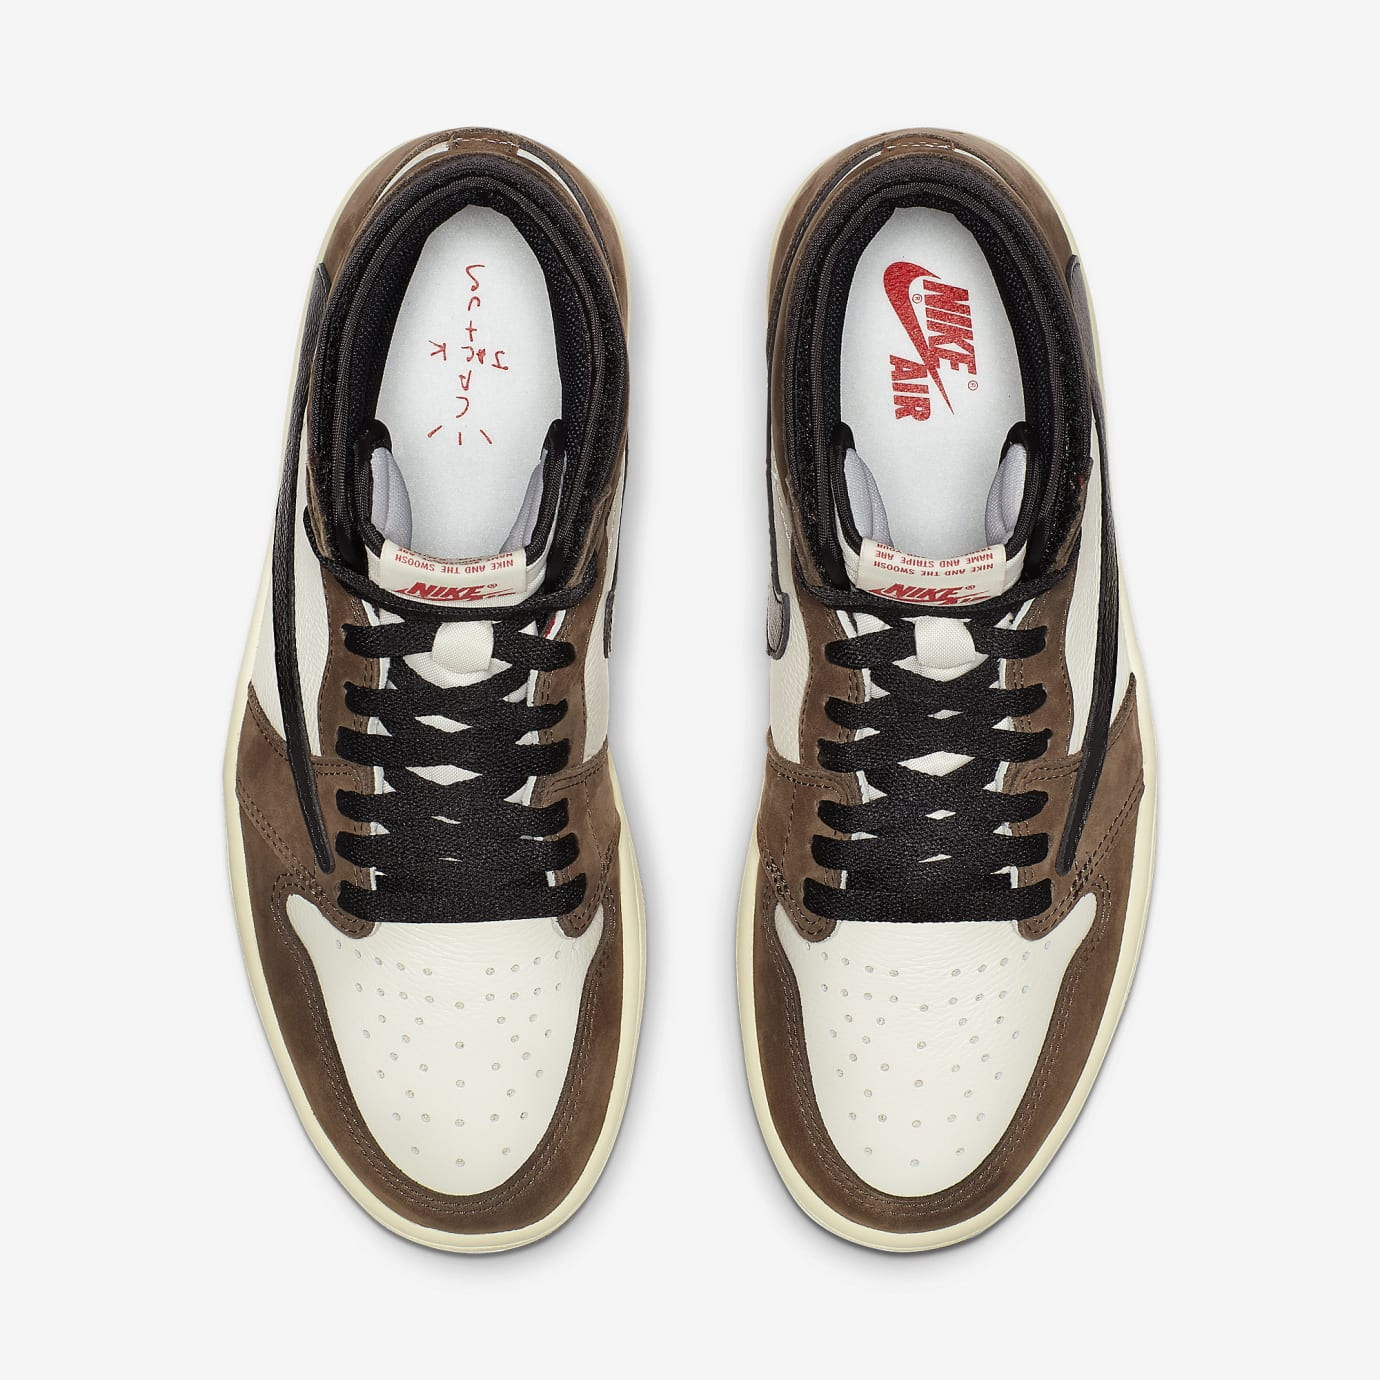 travis-scott-air-jordan-1-brown-release-date-cd4487-100-top